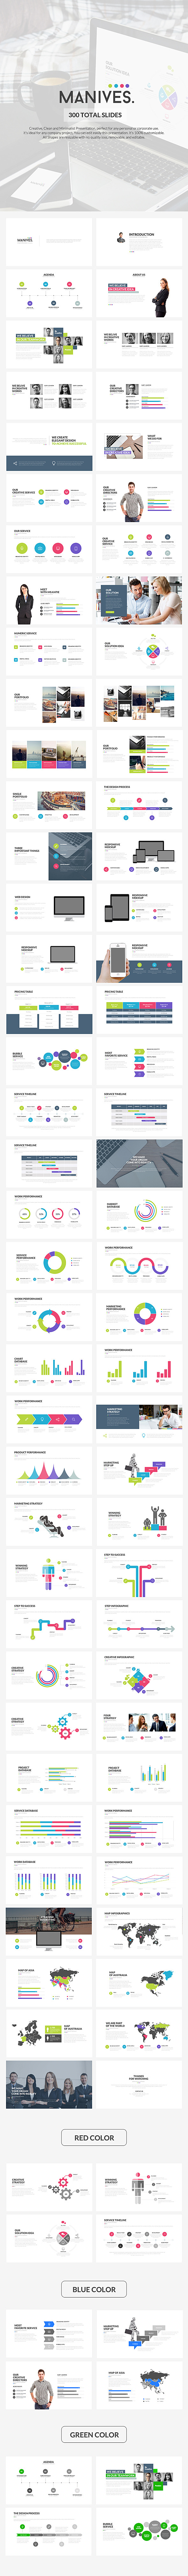 Manives Keynote Template - Business Keynote Templates